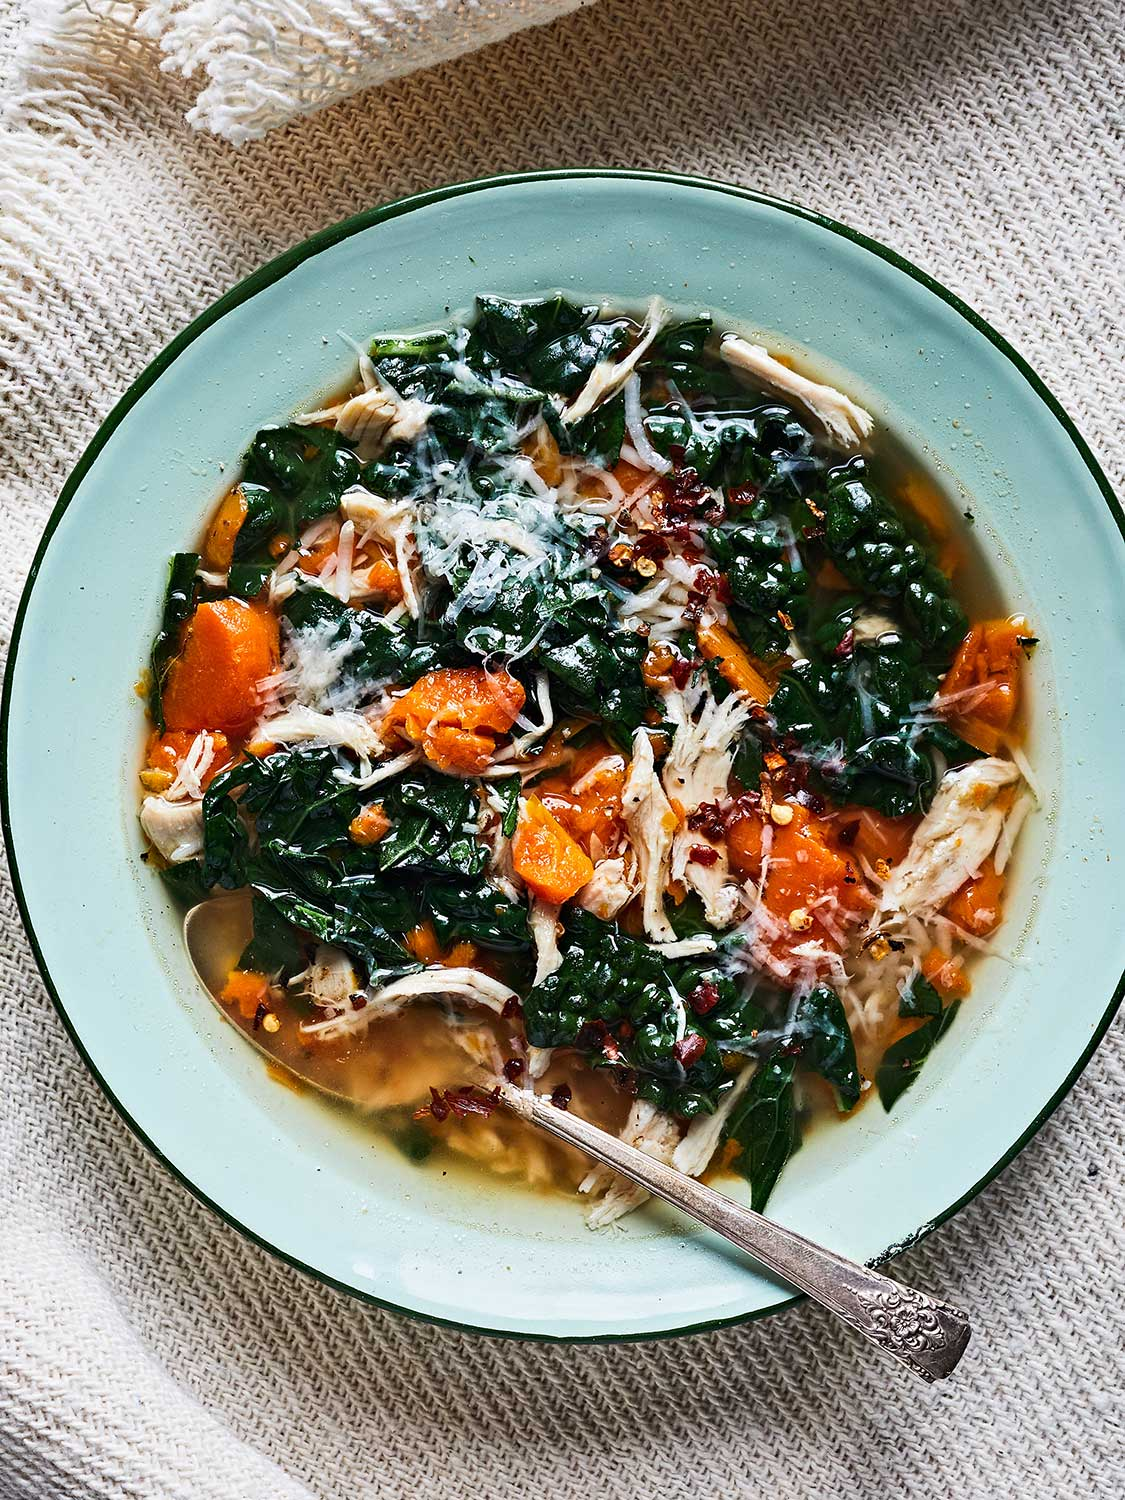 The Best Chicken Soup, with rice, carrots, and kale